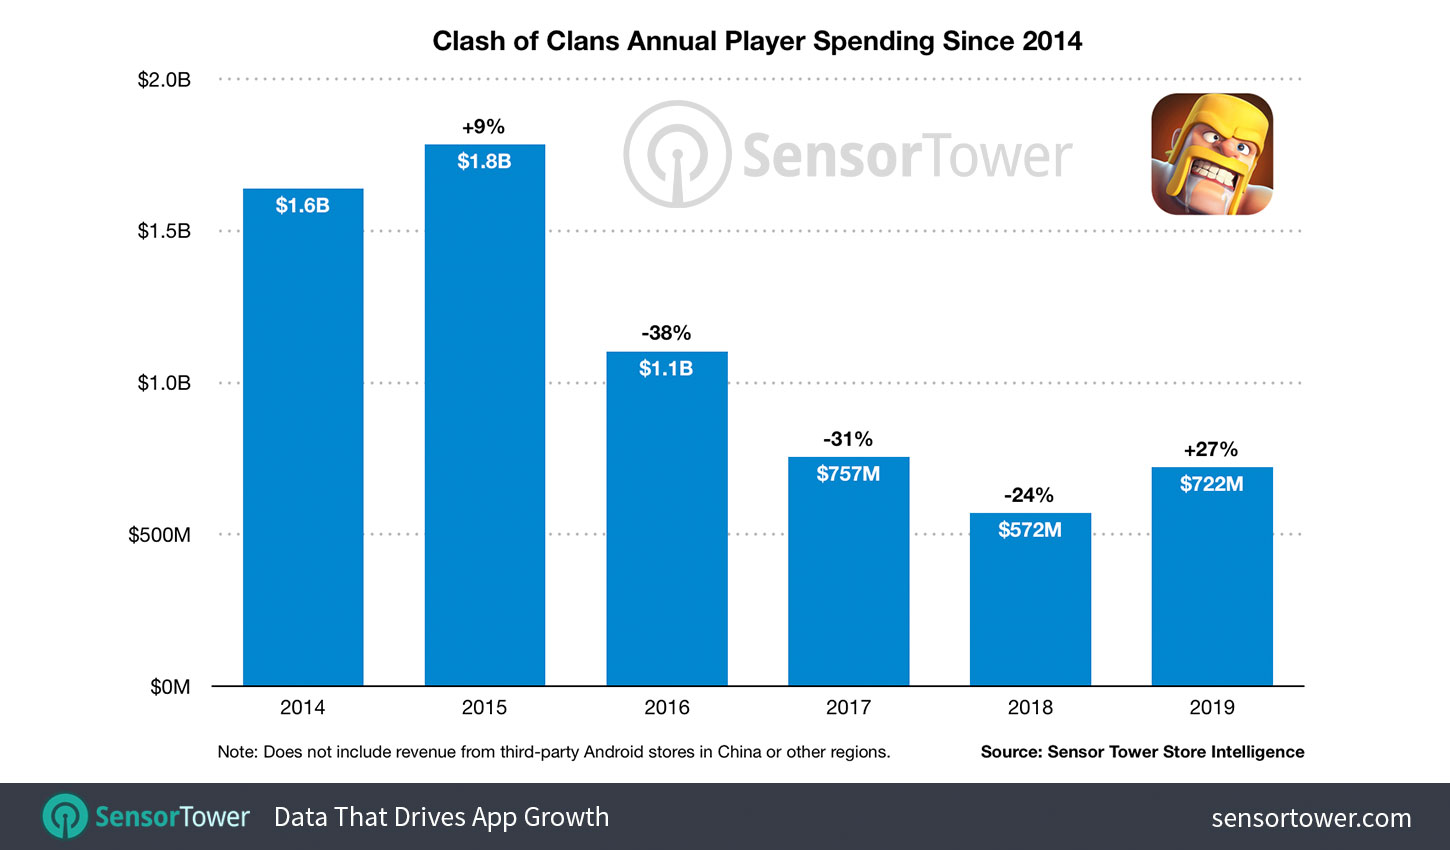 clash-of-clans-annual-revenue-since-2014